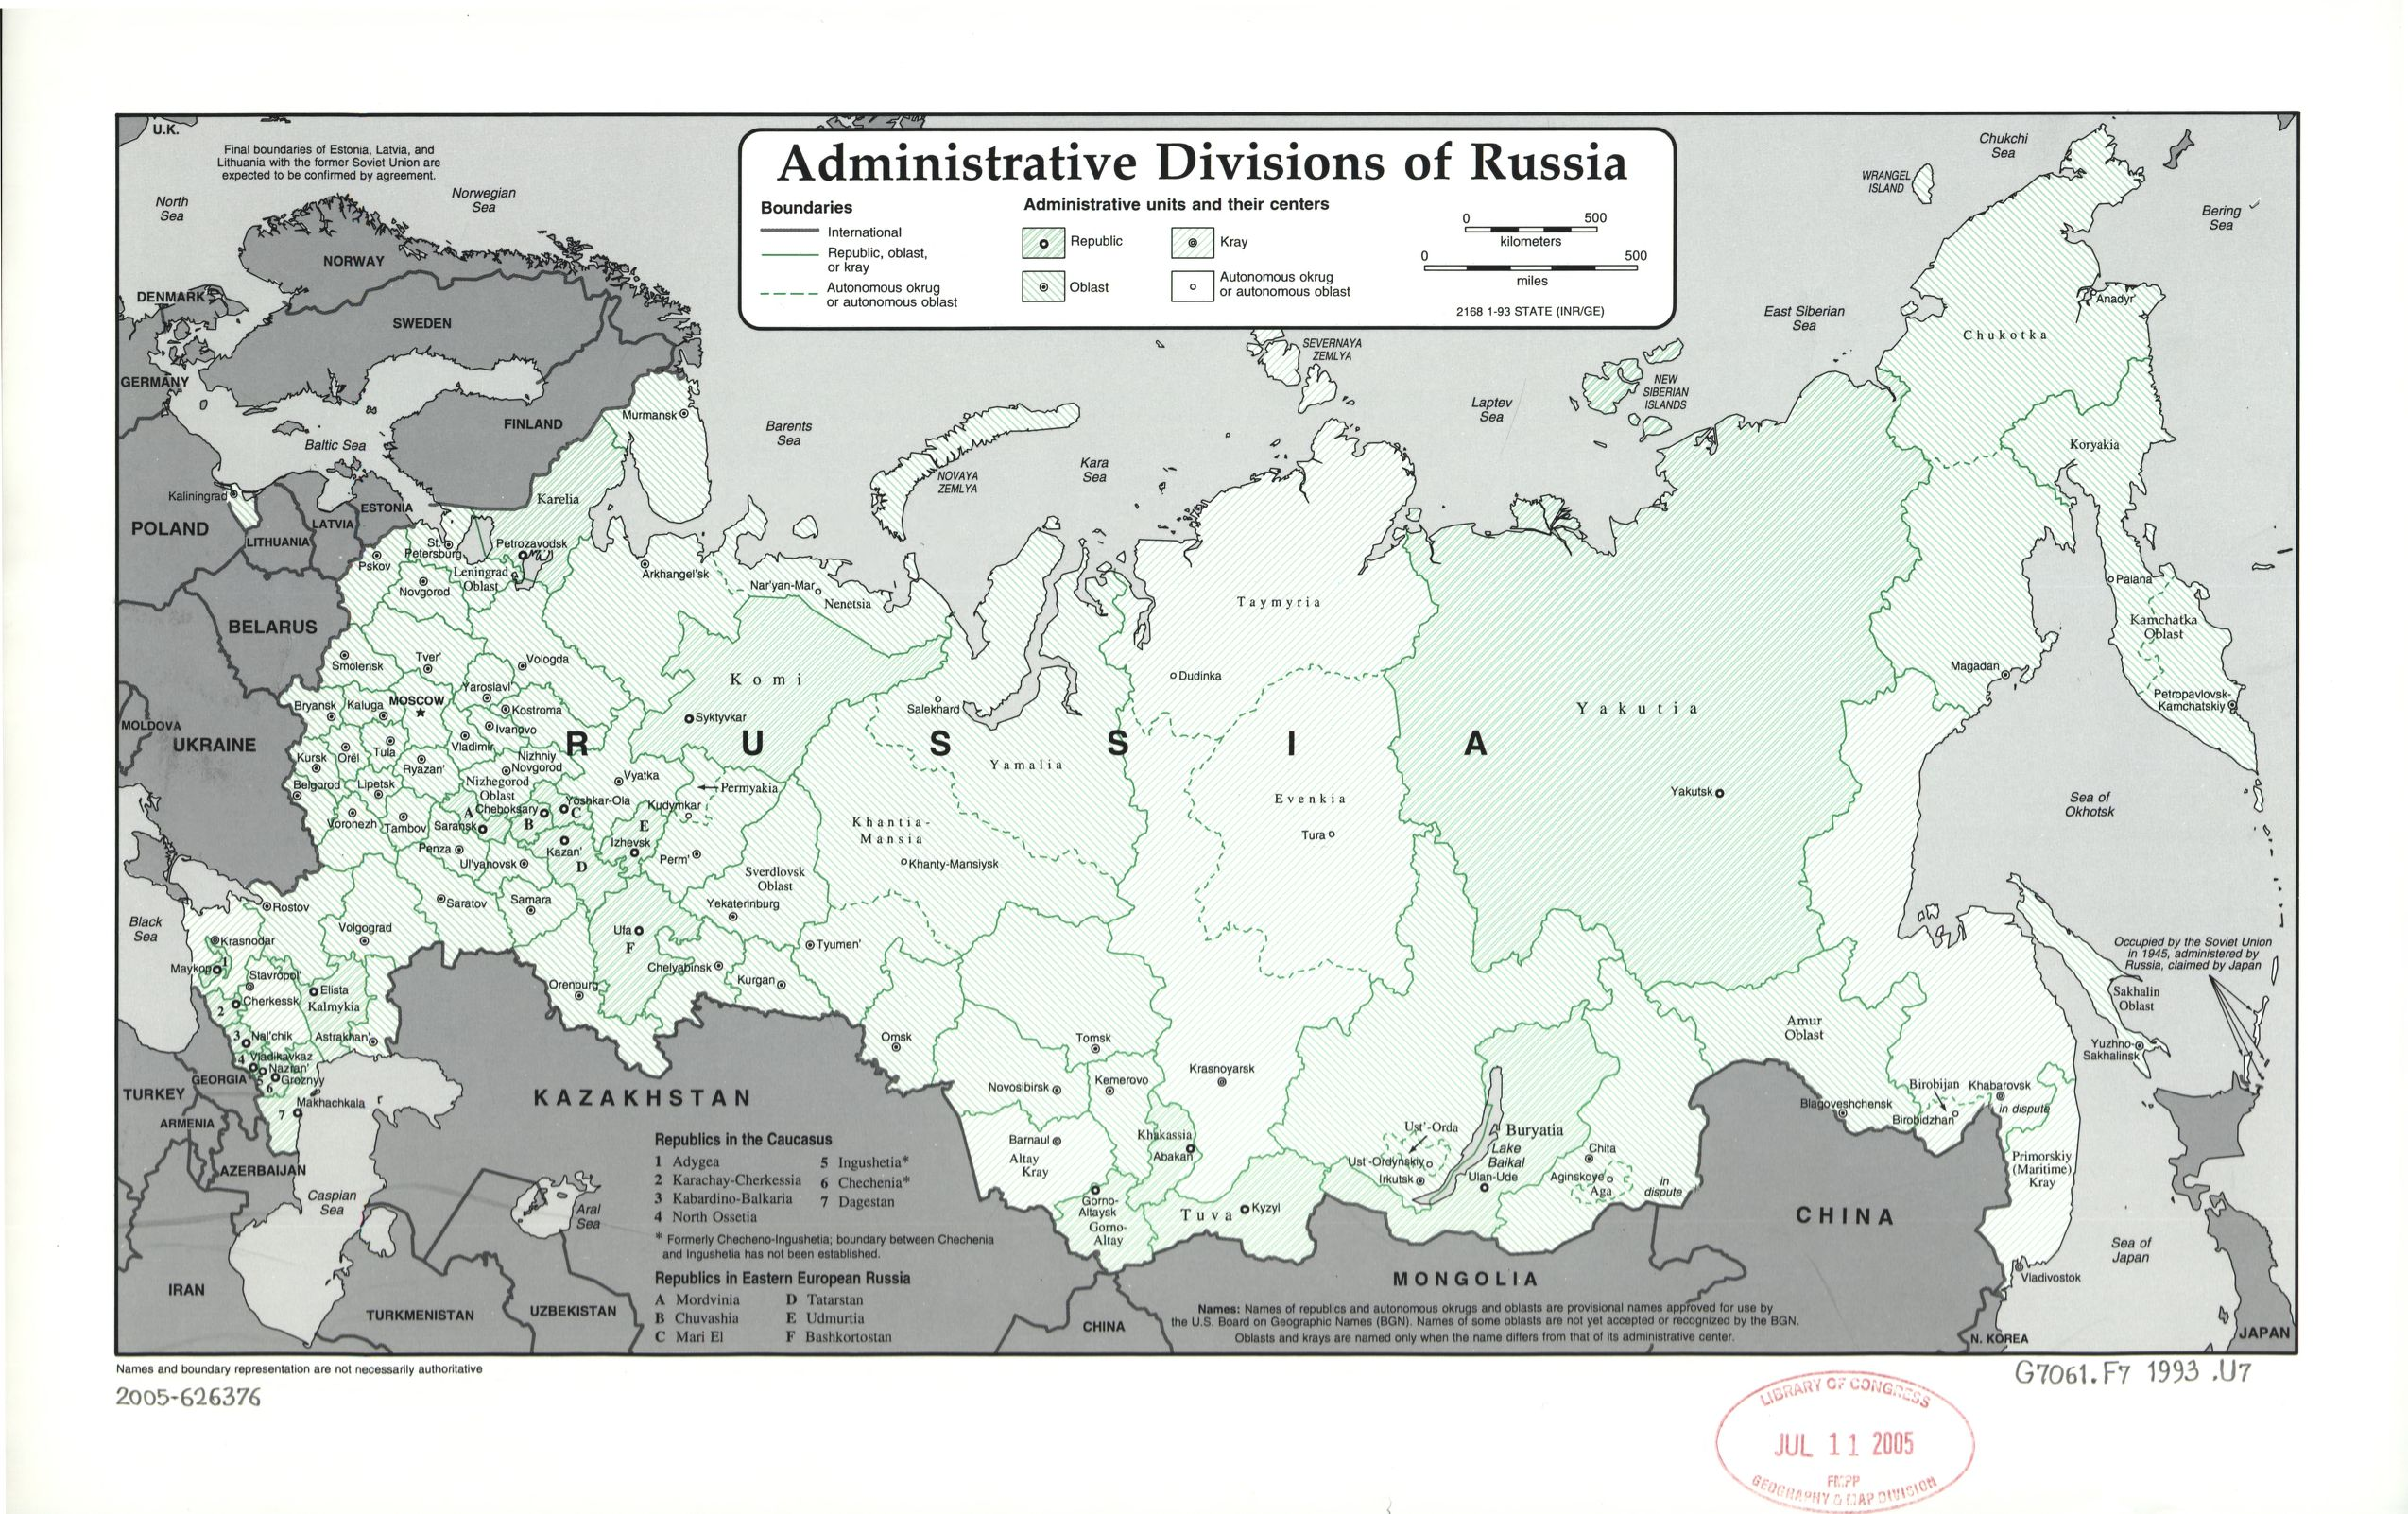 Russian Federation Customs, Currency & Airport Tax regulations summary